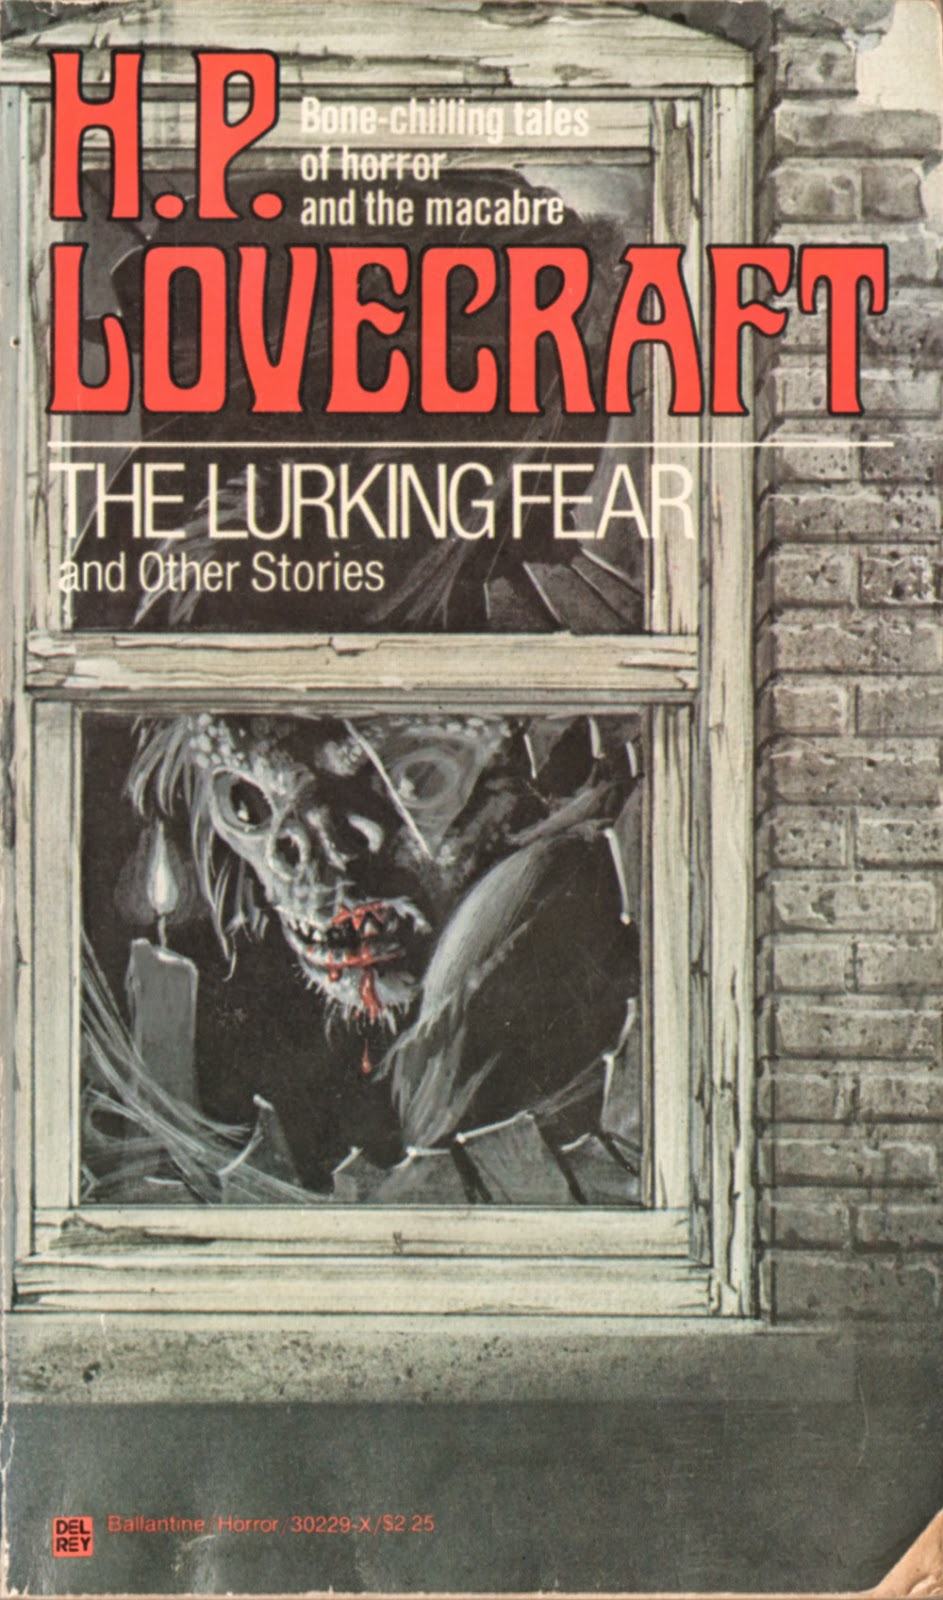 H. P. Lovecraft bibliography